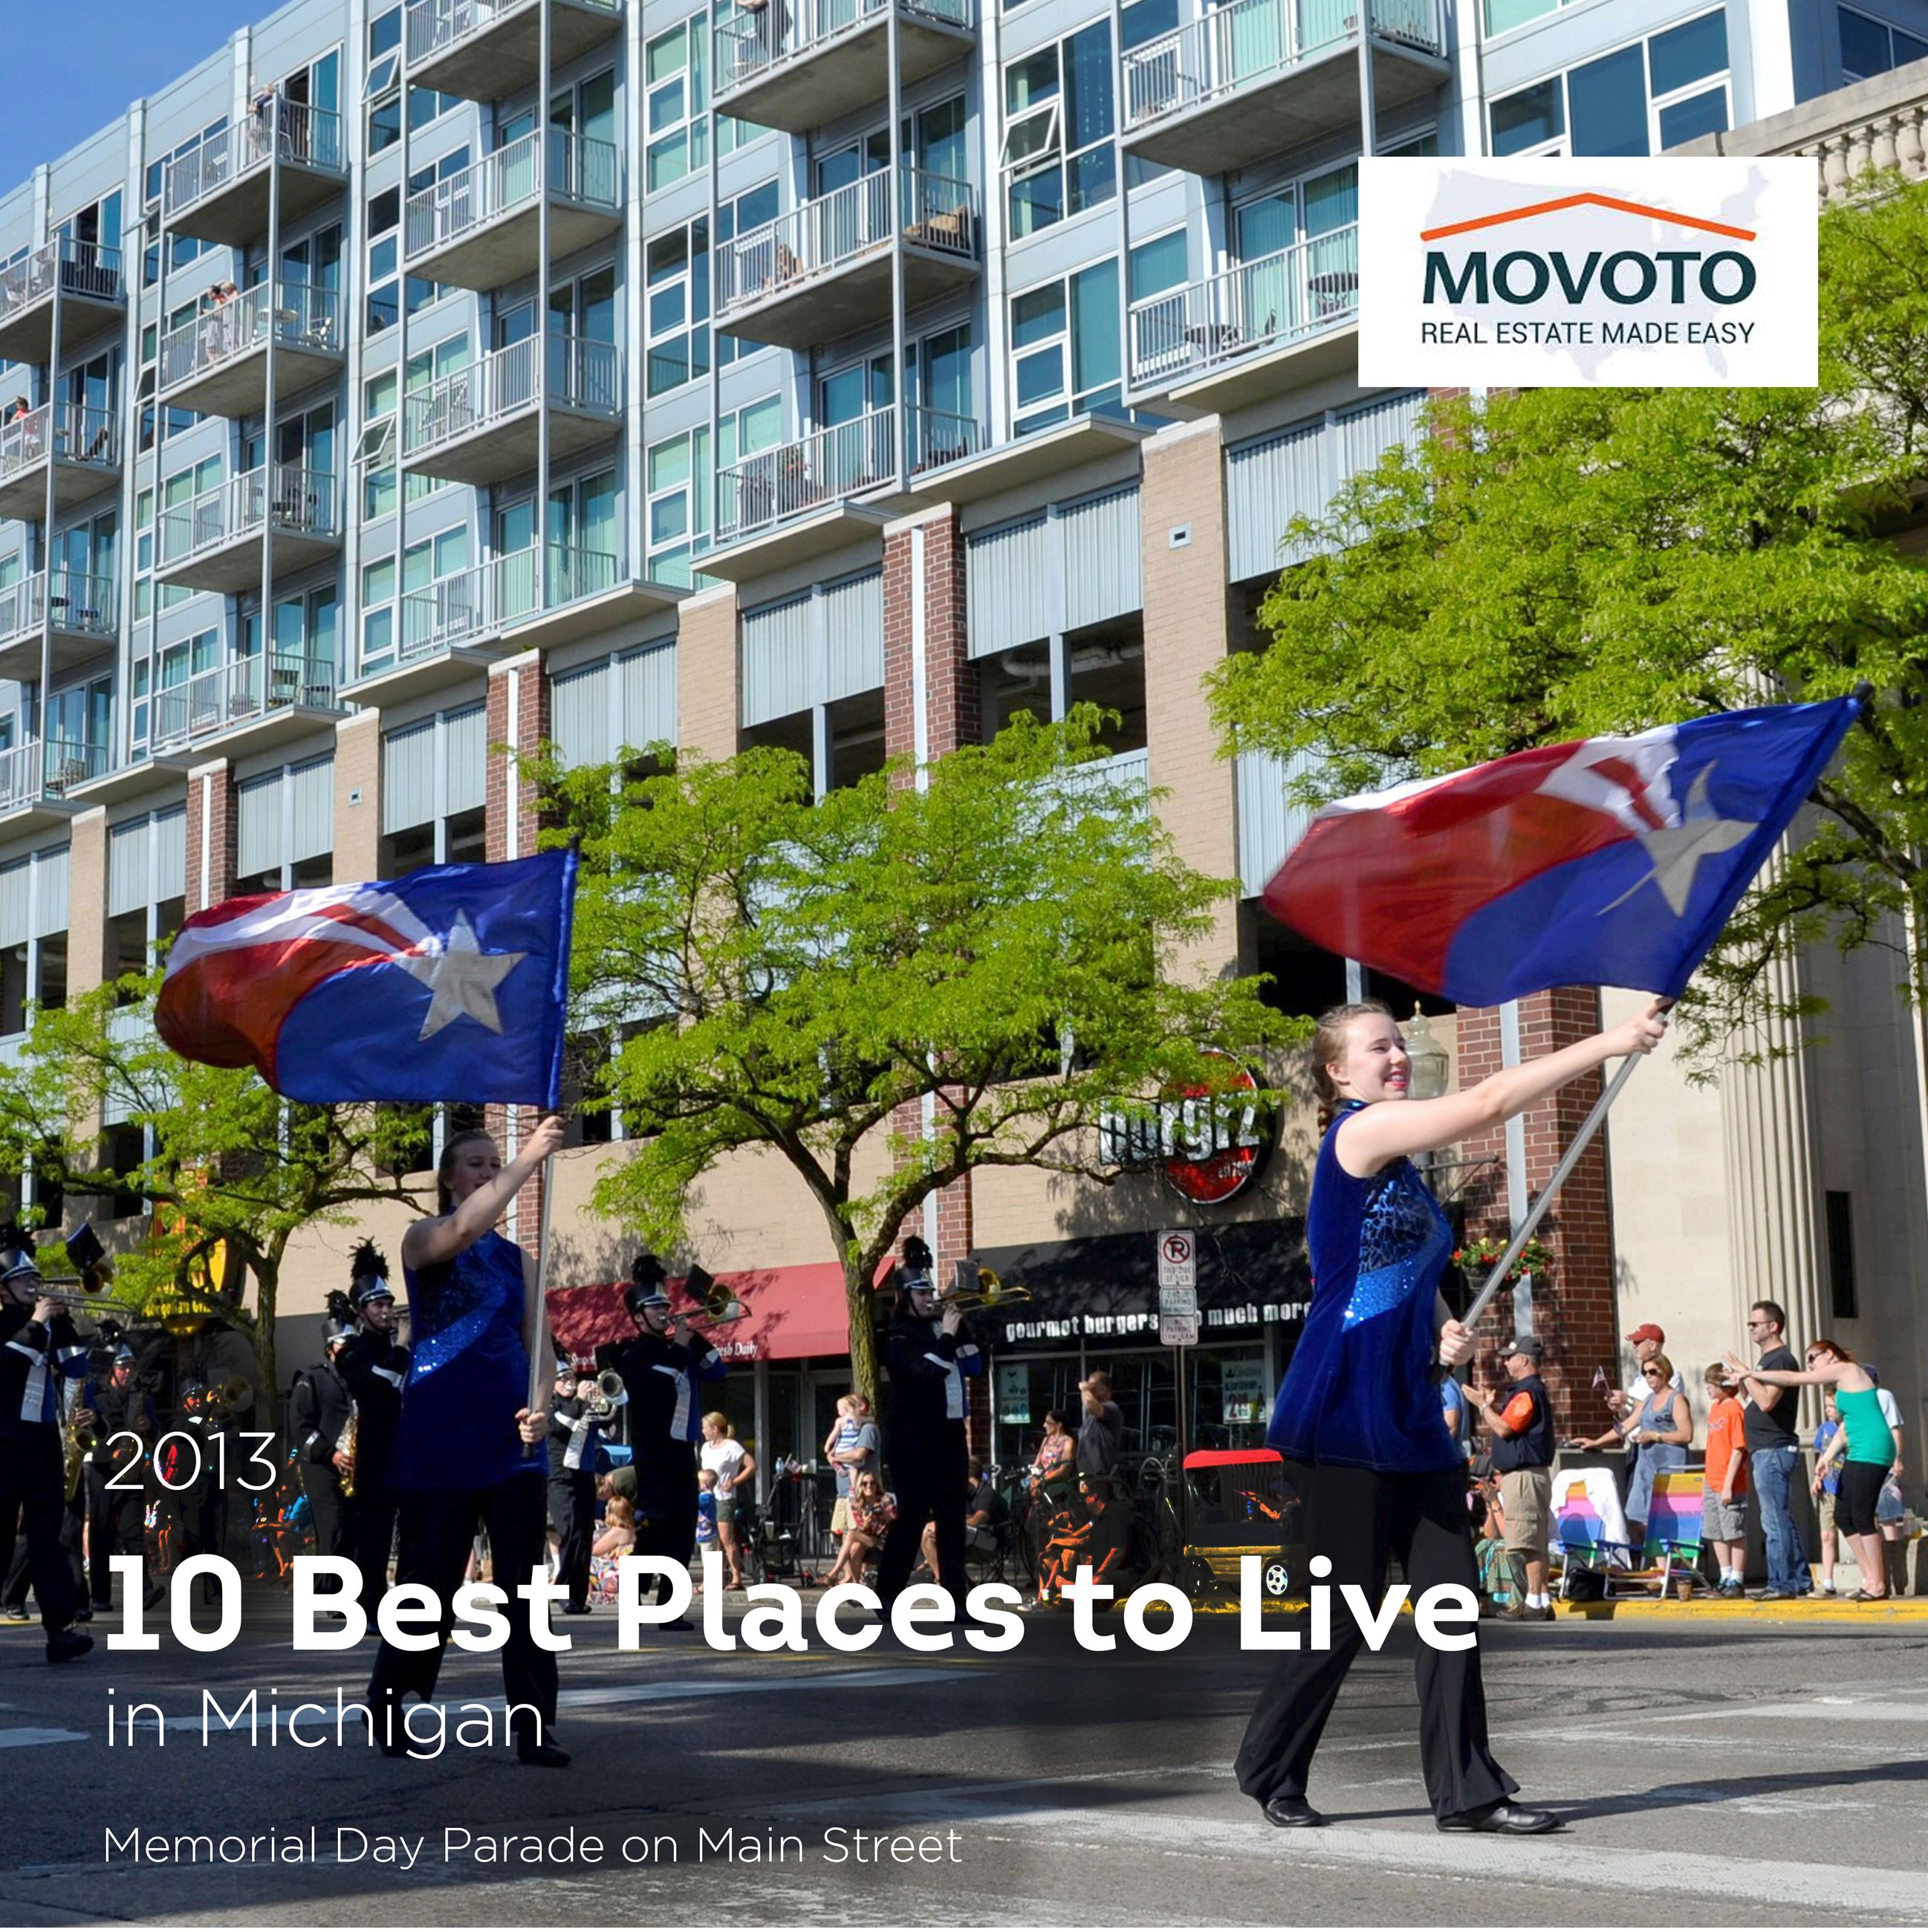 10 Best Places to Live